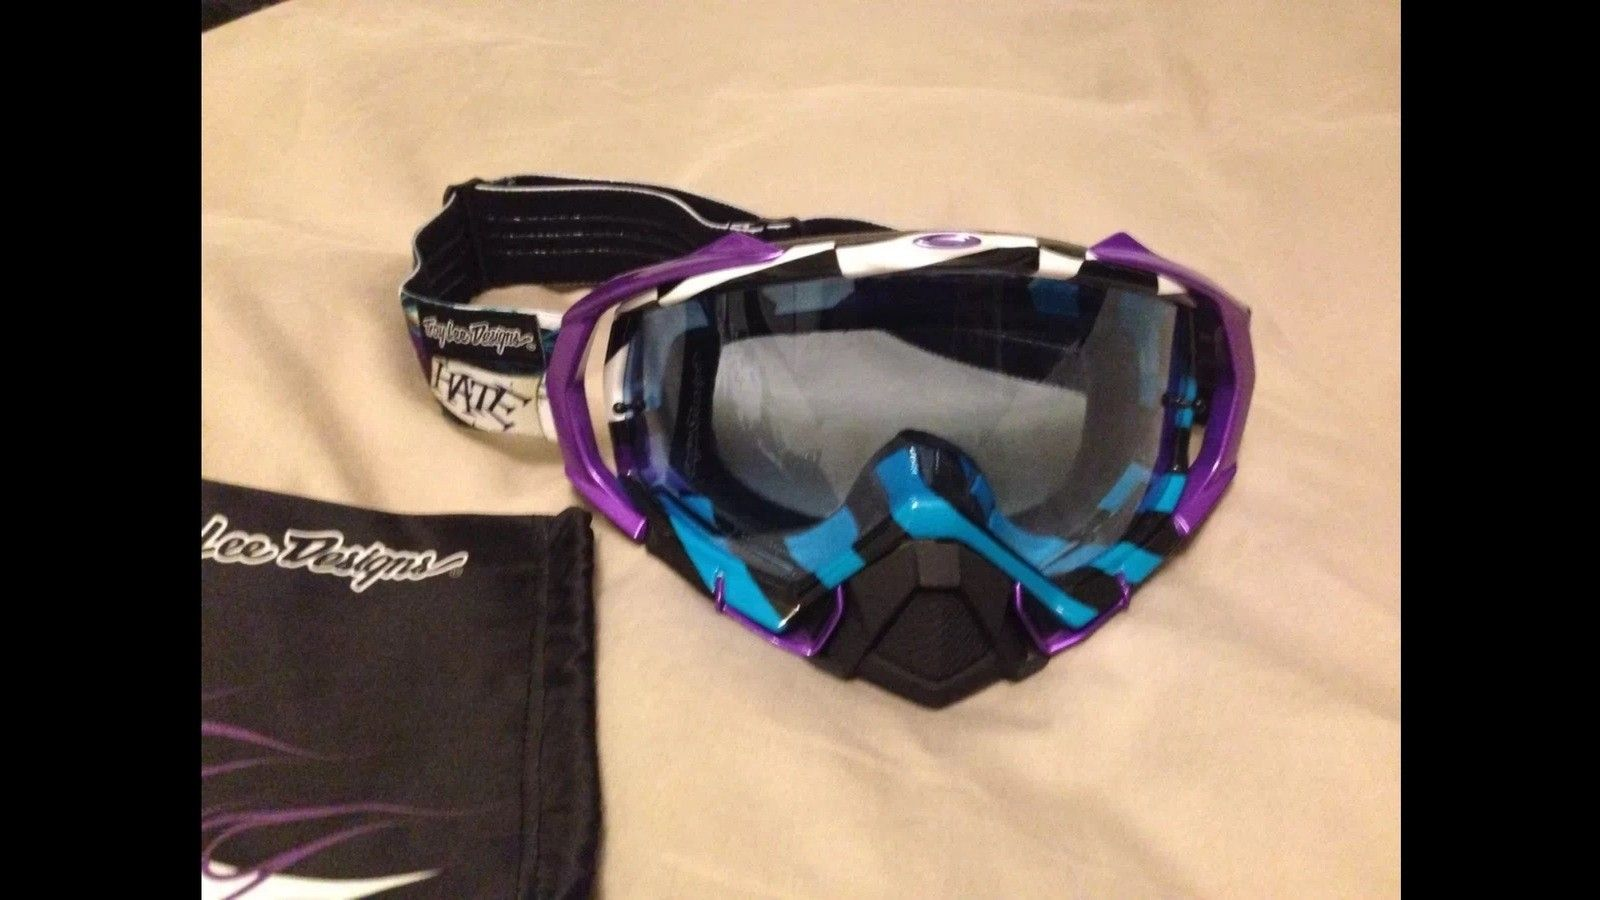 Value of Love and Hate goggles - image.jpg